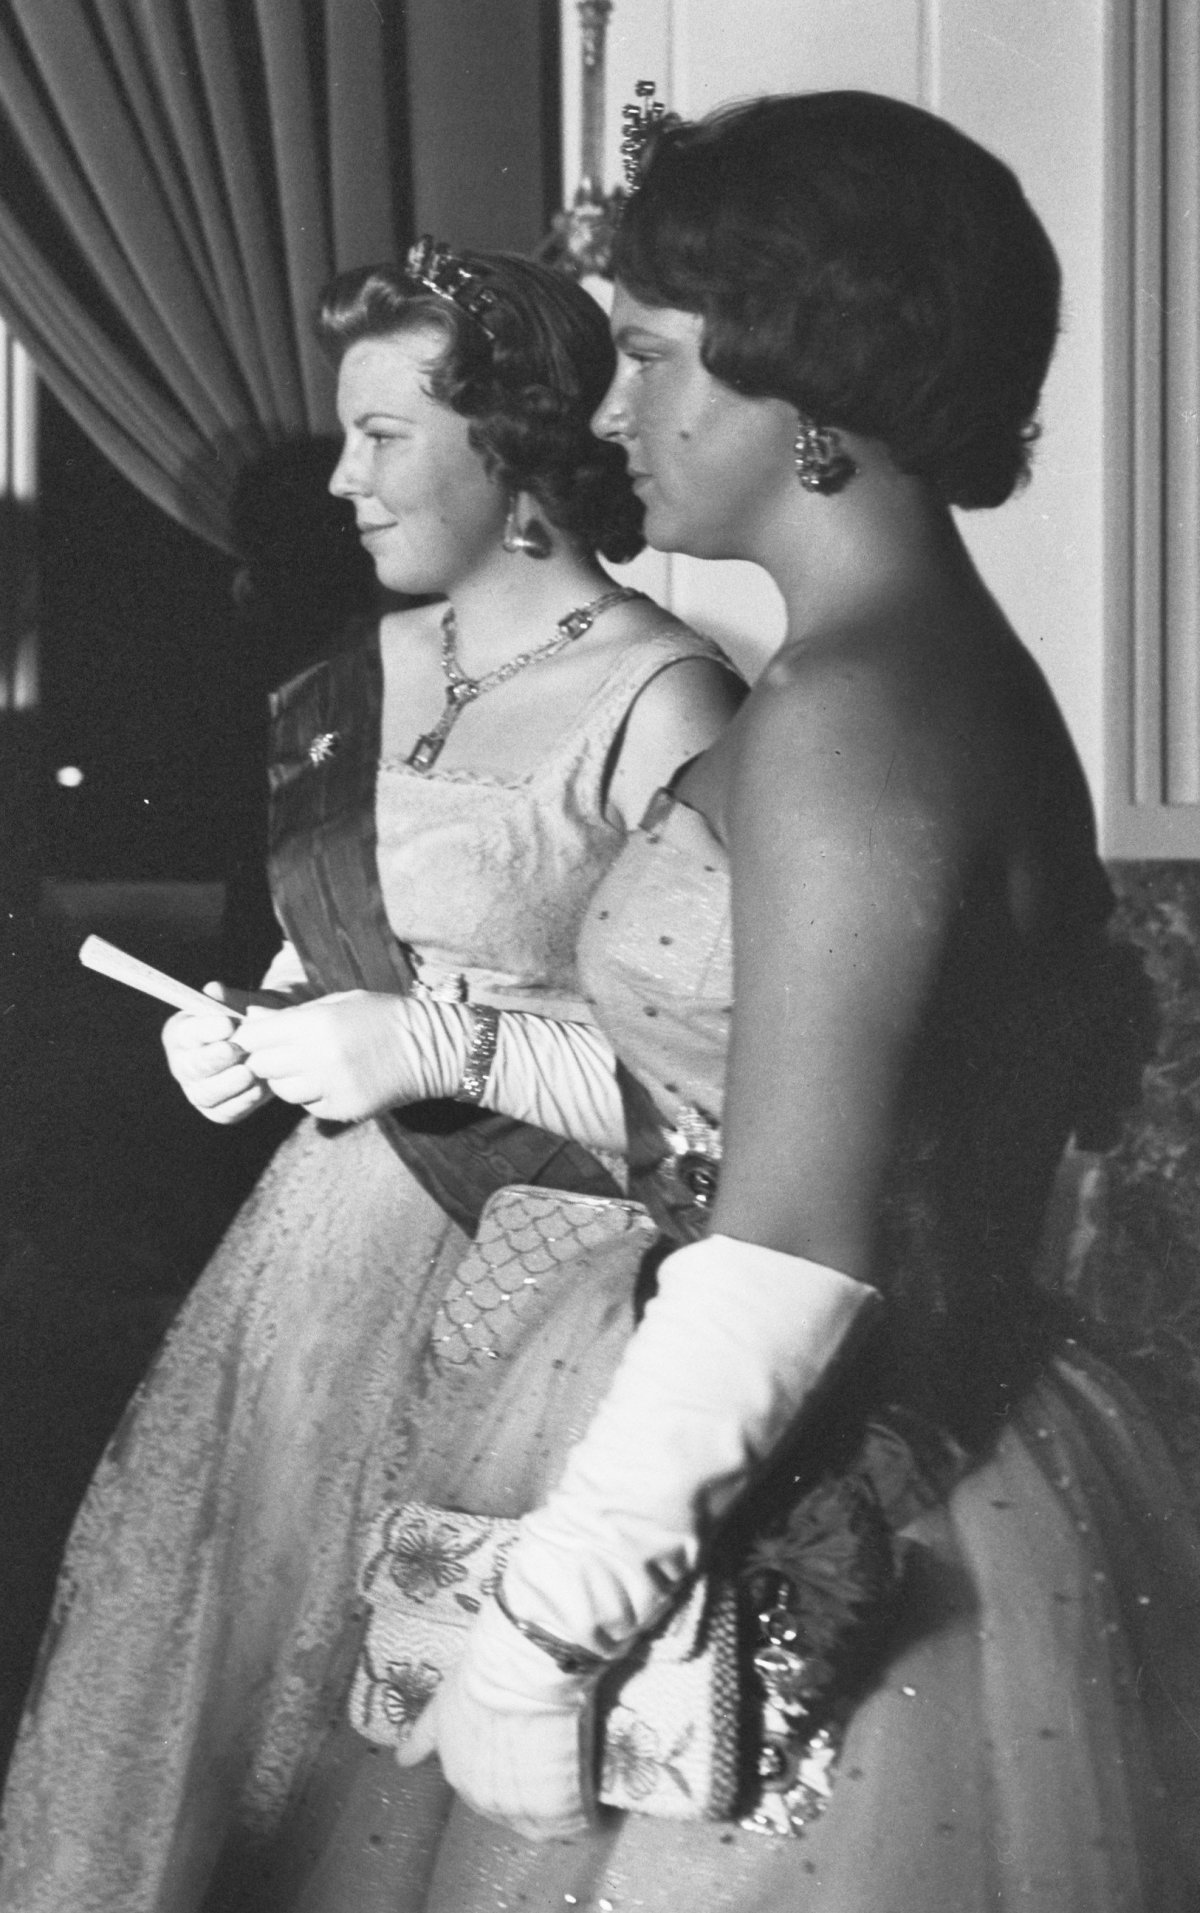 Princess Beatrix and Princess Irene of the Netherlands attend a gala during the Belgian state visit, July 1959